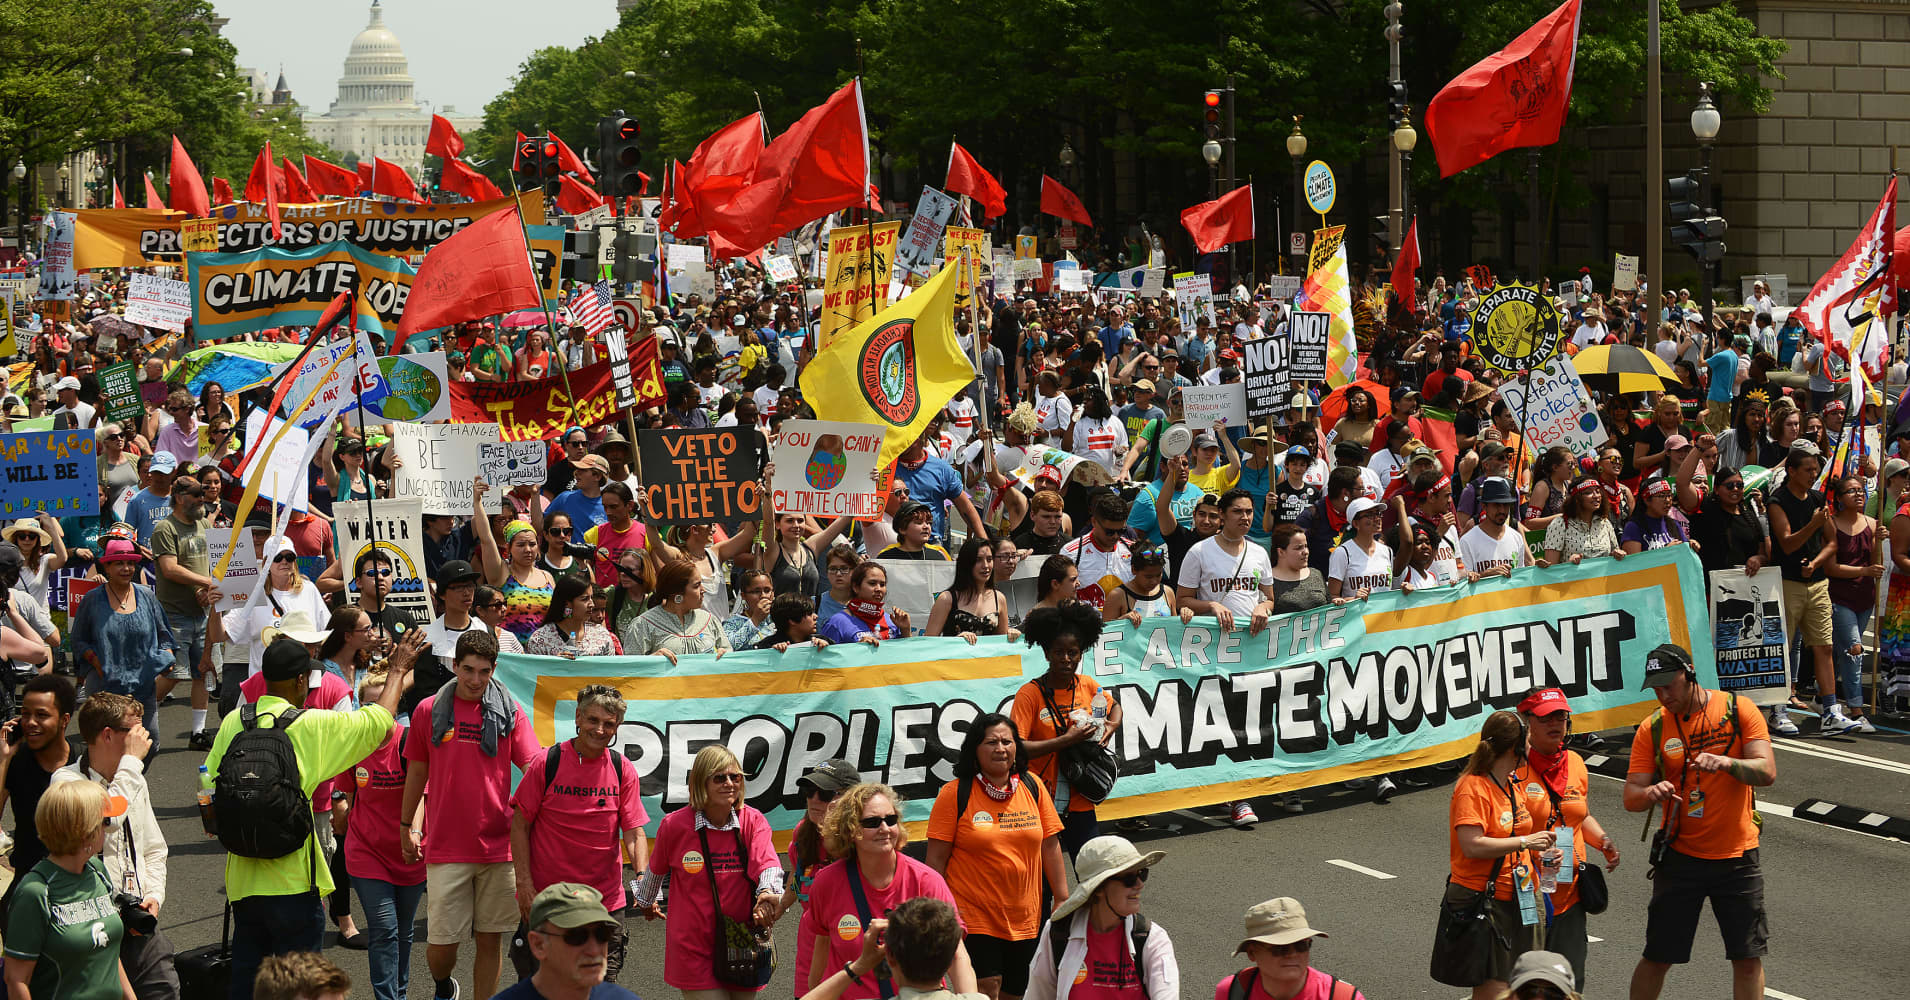 Thousands take to the streets to demand action on climate change